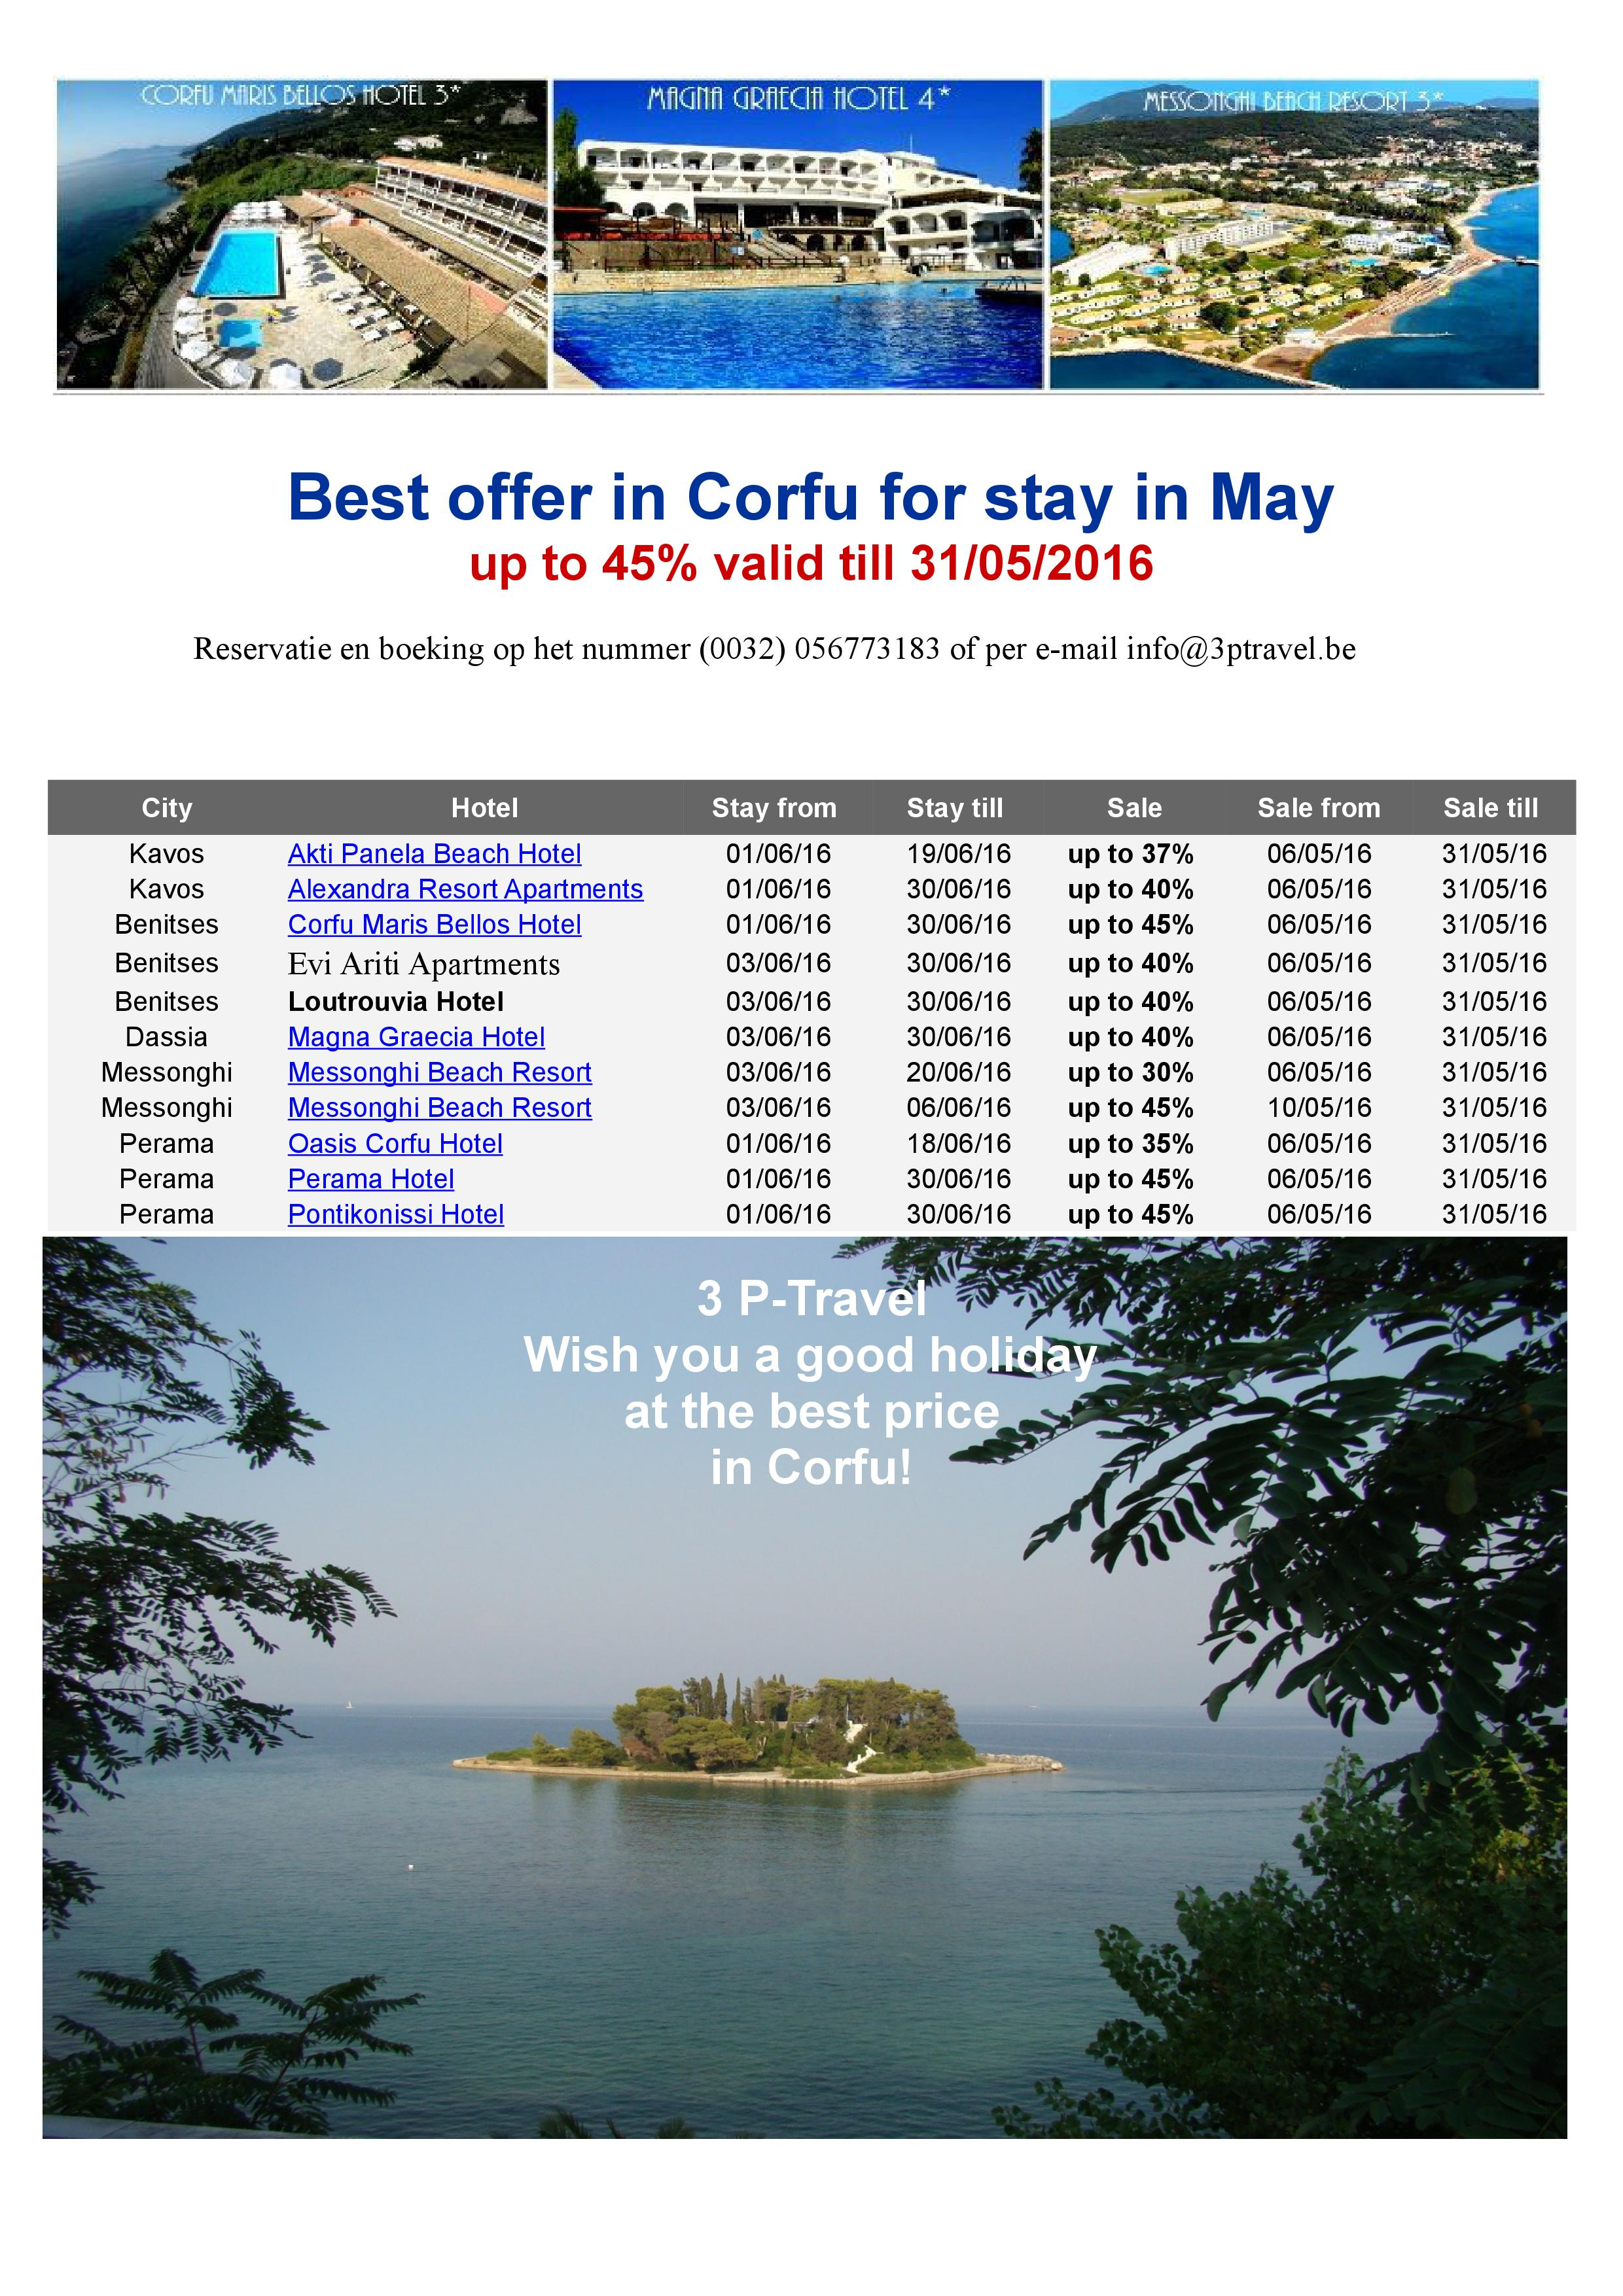 Best offer Corfu may 2016.